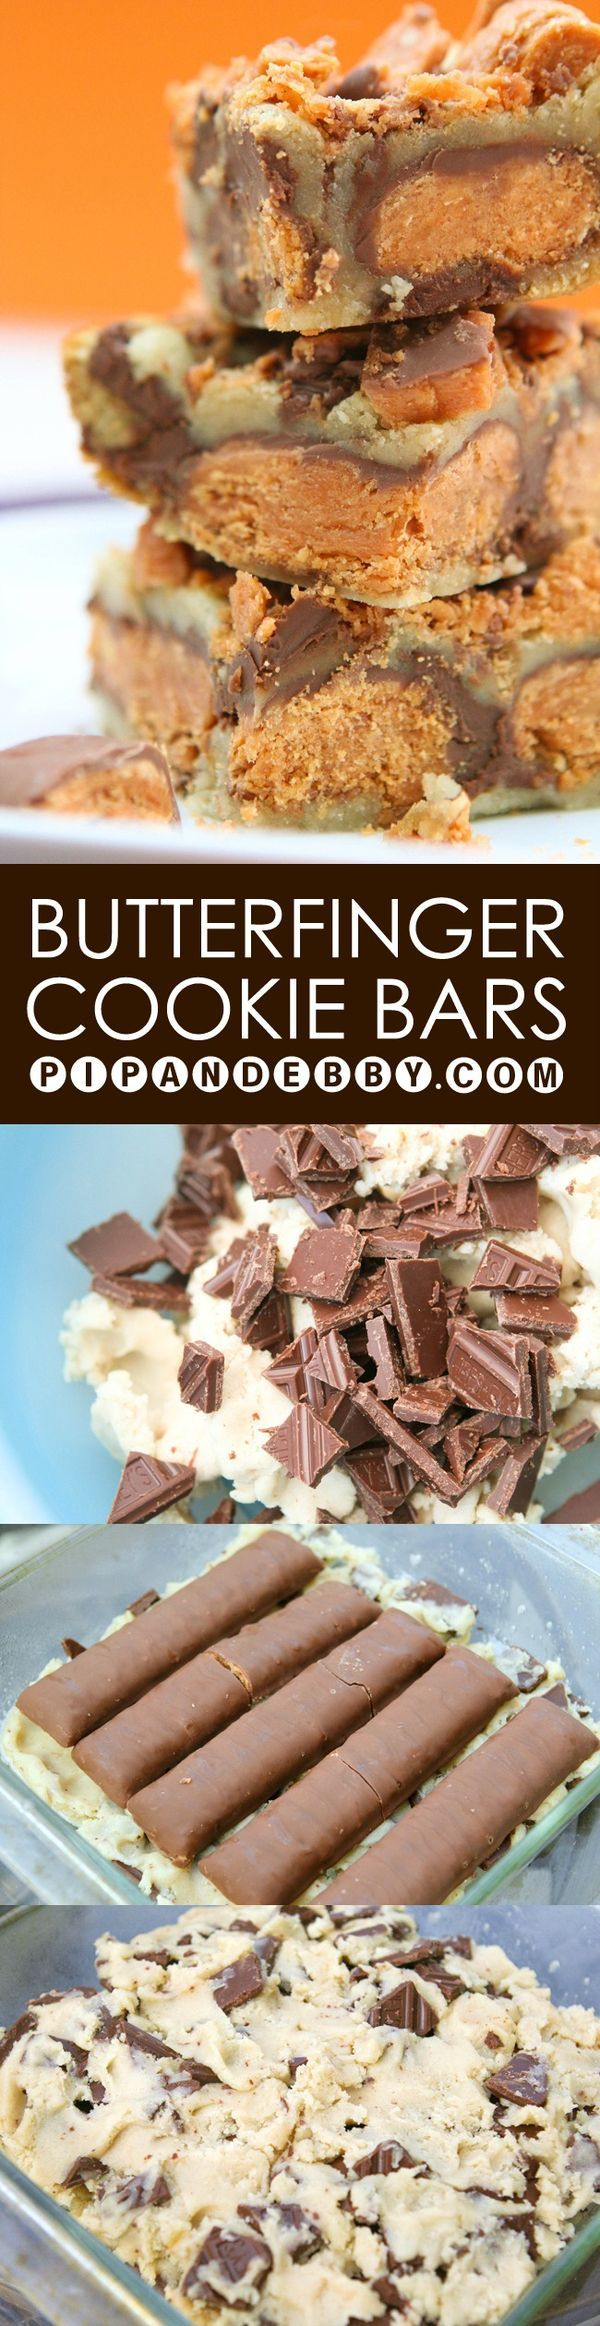 Butterfinger Cookie Bars - My favorite candy bar is baked RIGHT into the center of these delicious bars. YUM!